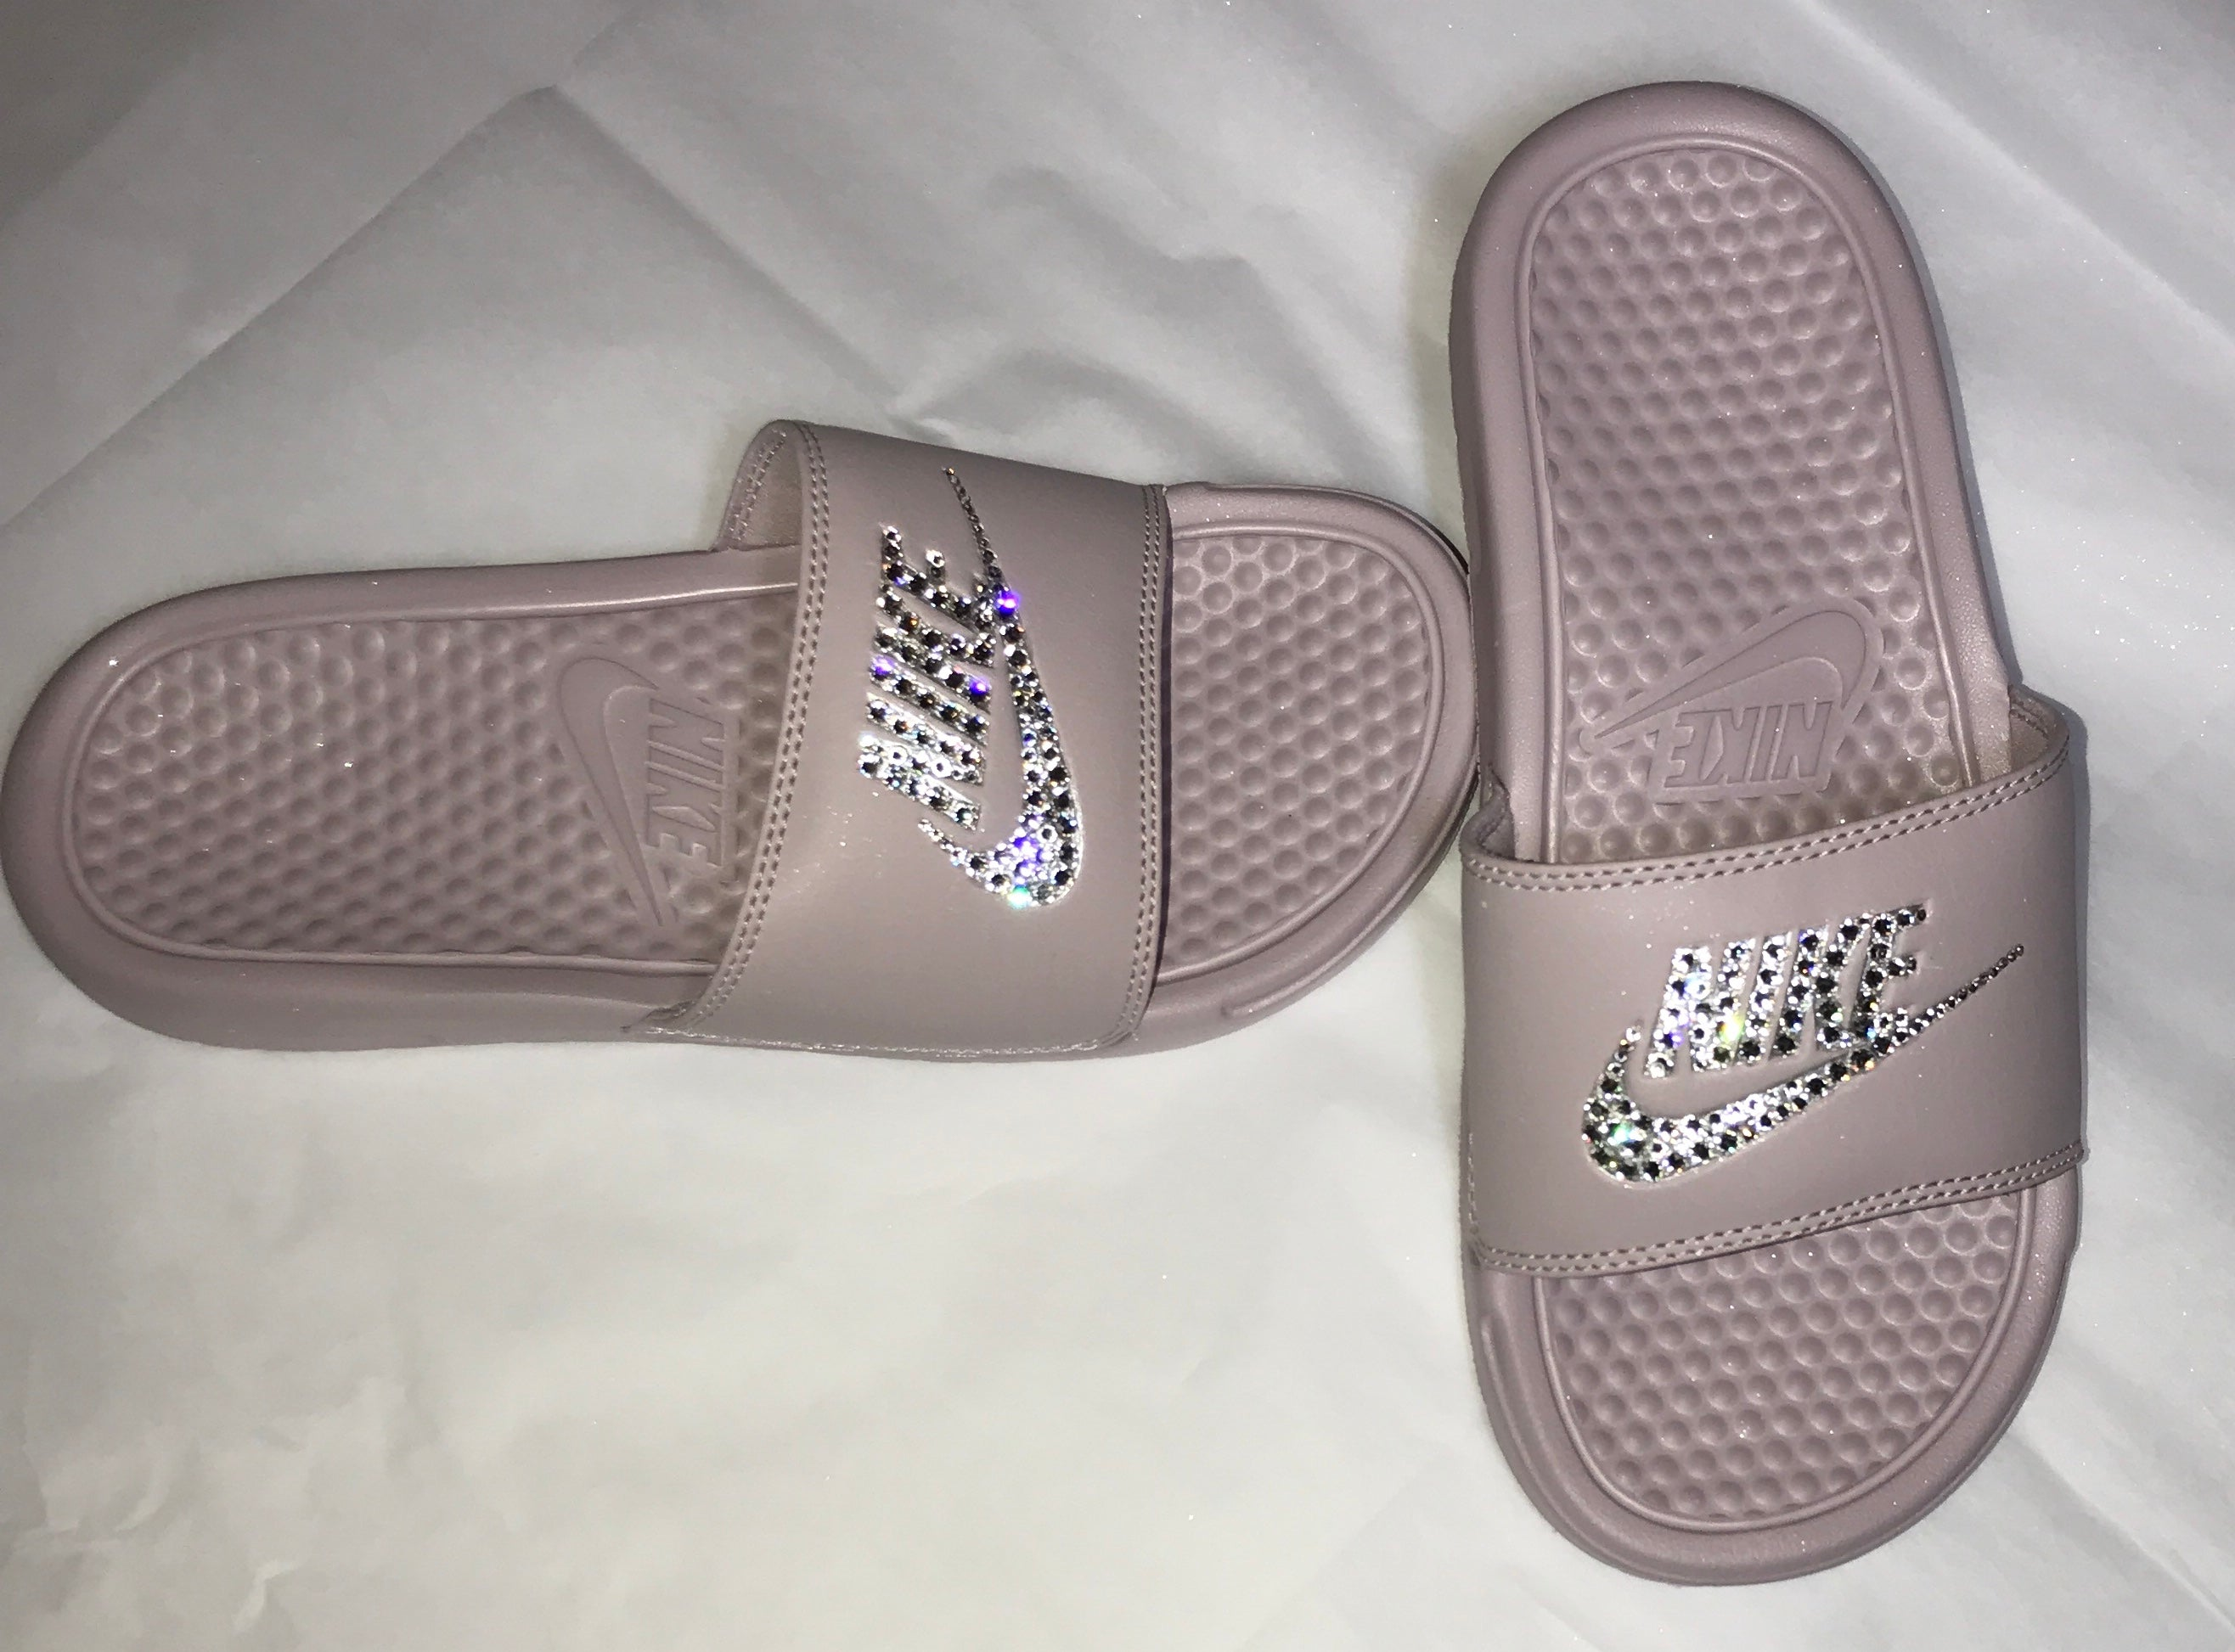 Nike Benassi JDI slide in Particle Pink with Crystahhled details -  CRYSTAHHLED 9cd72873d035